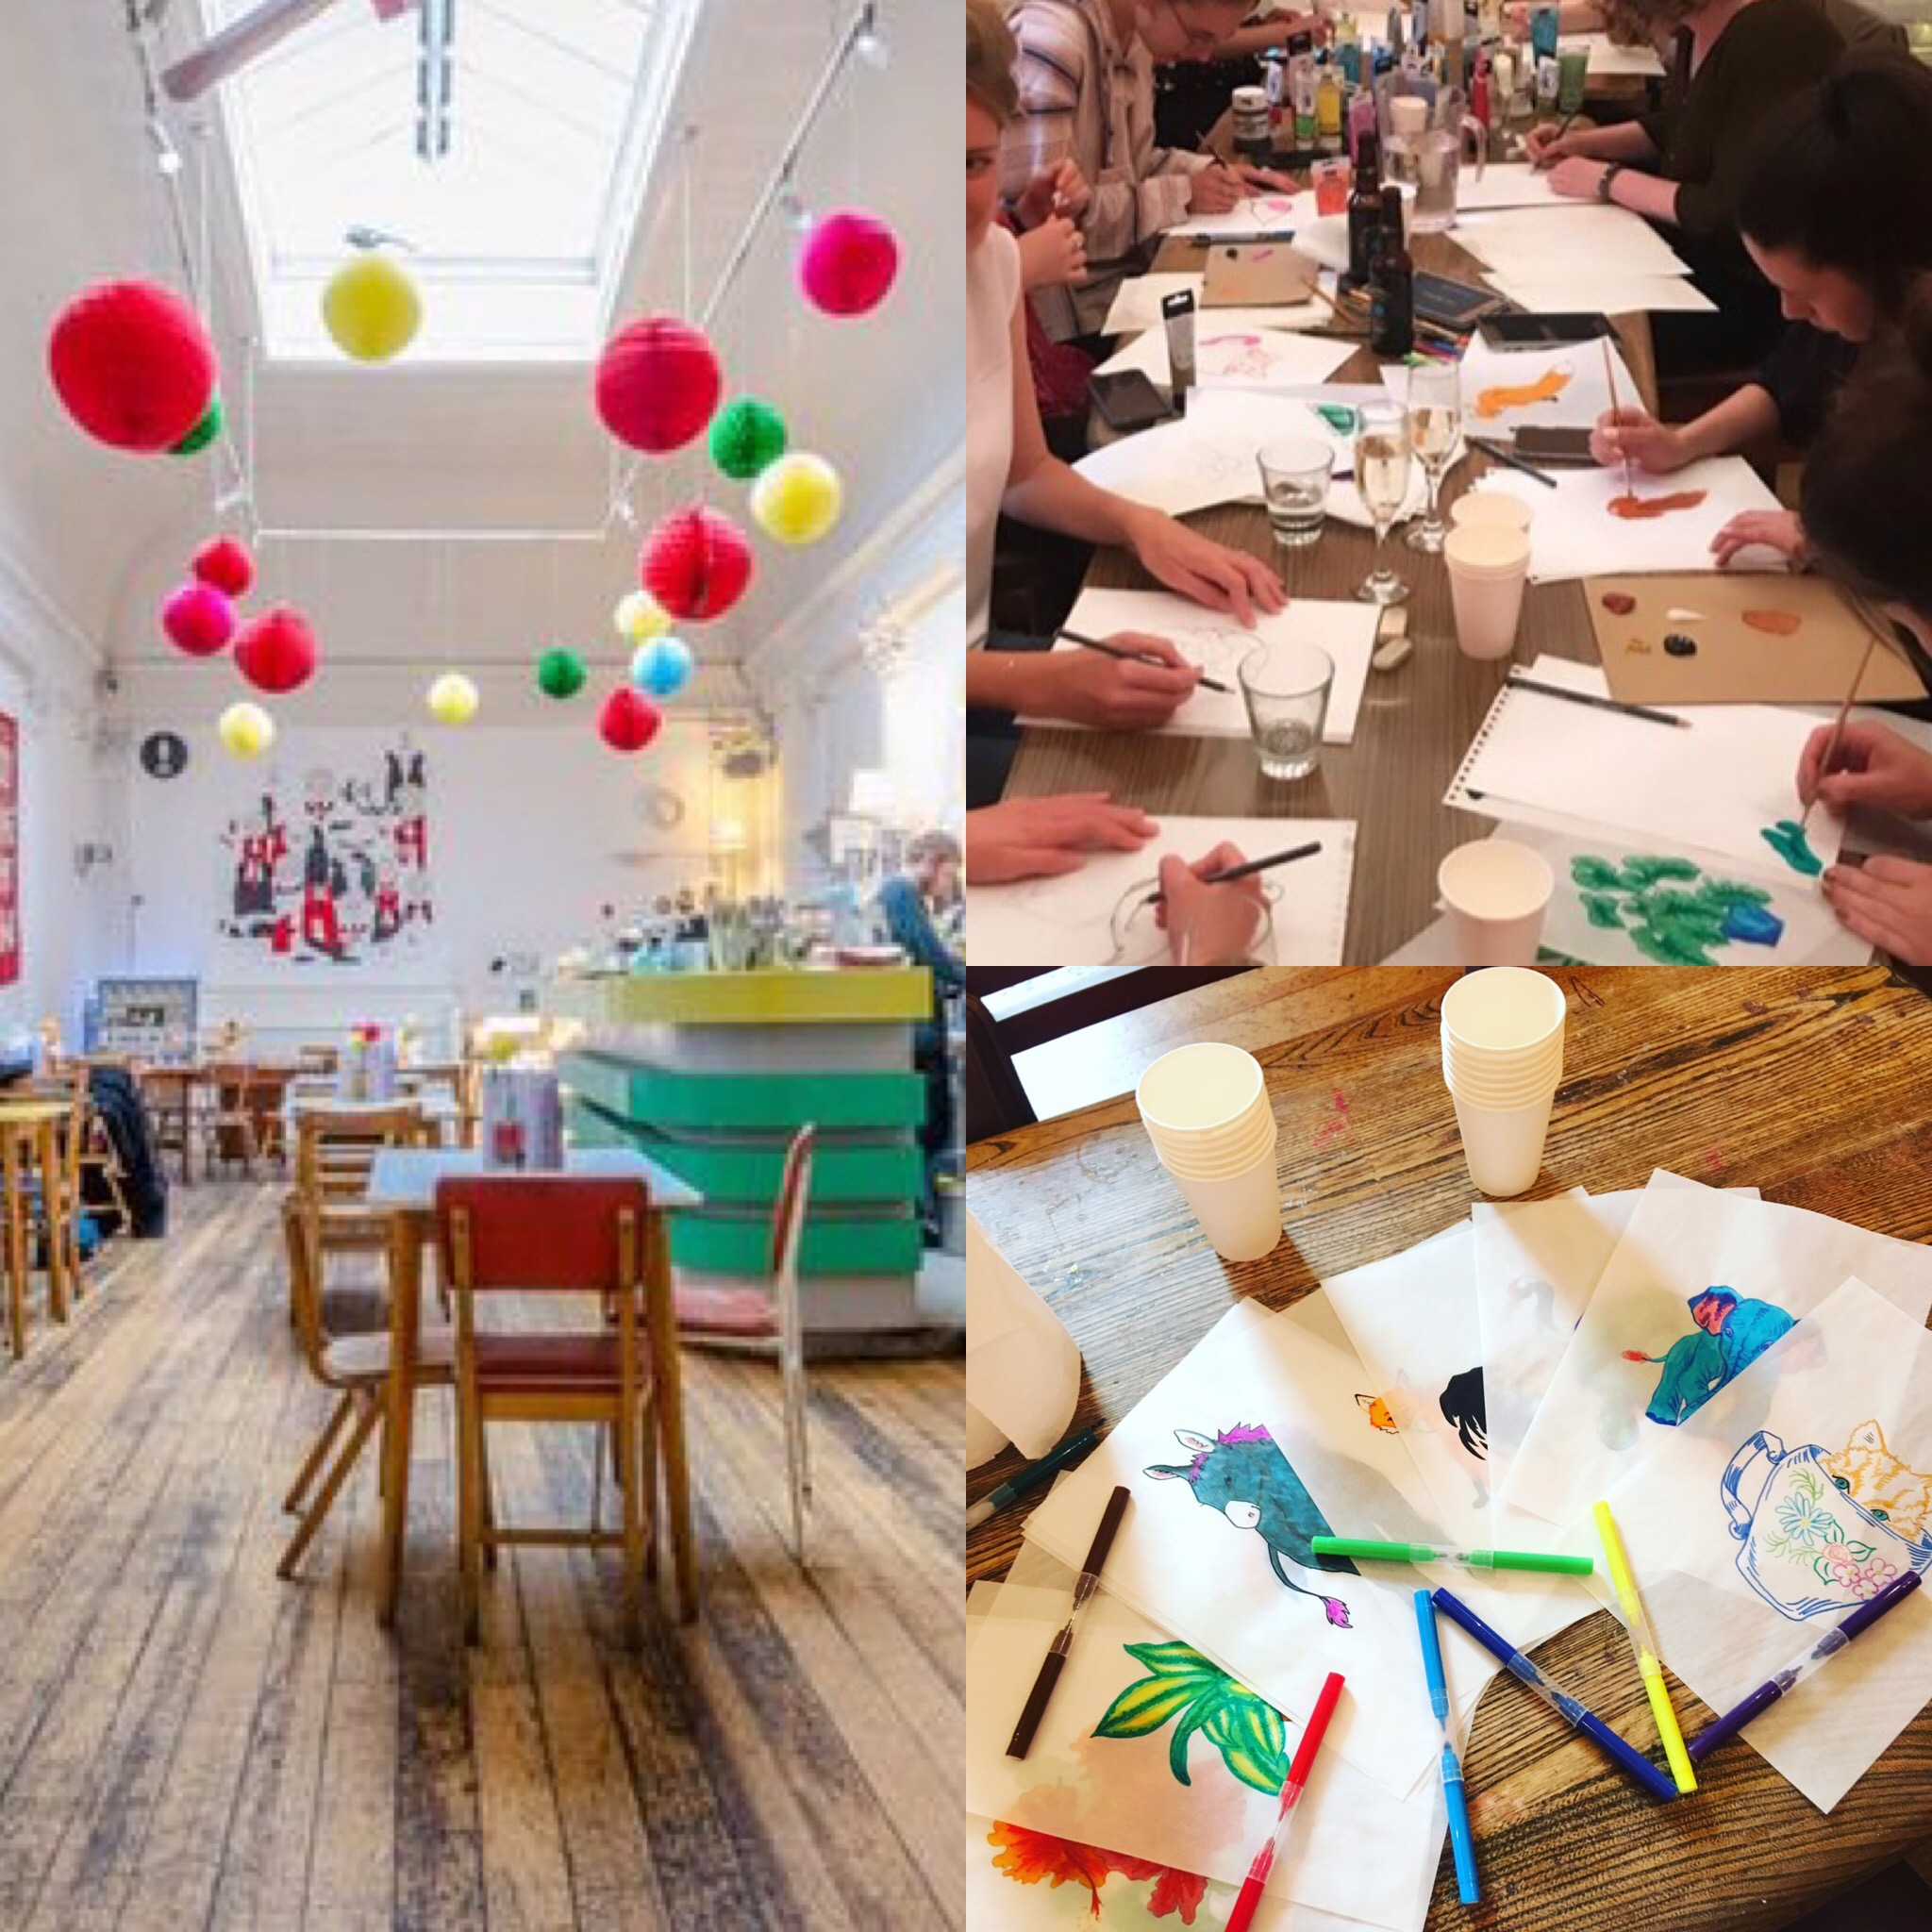 Create Your Own Artwork workshop in progress at Drink Shop & Do venue.